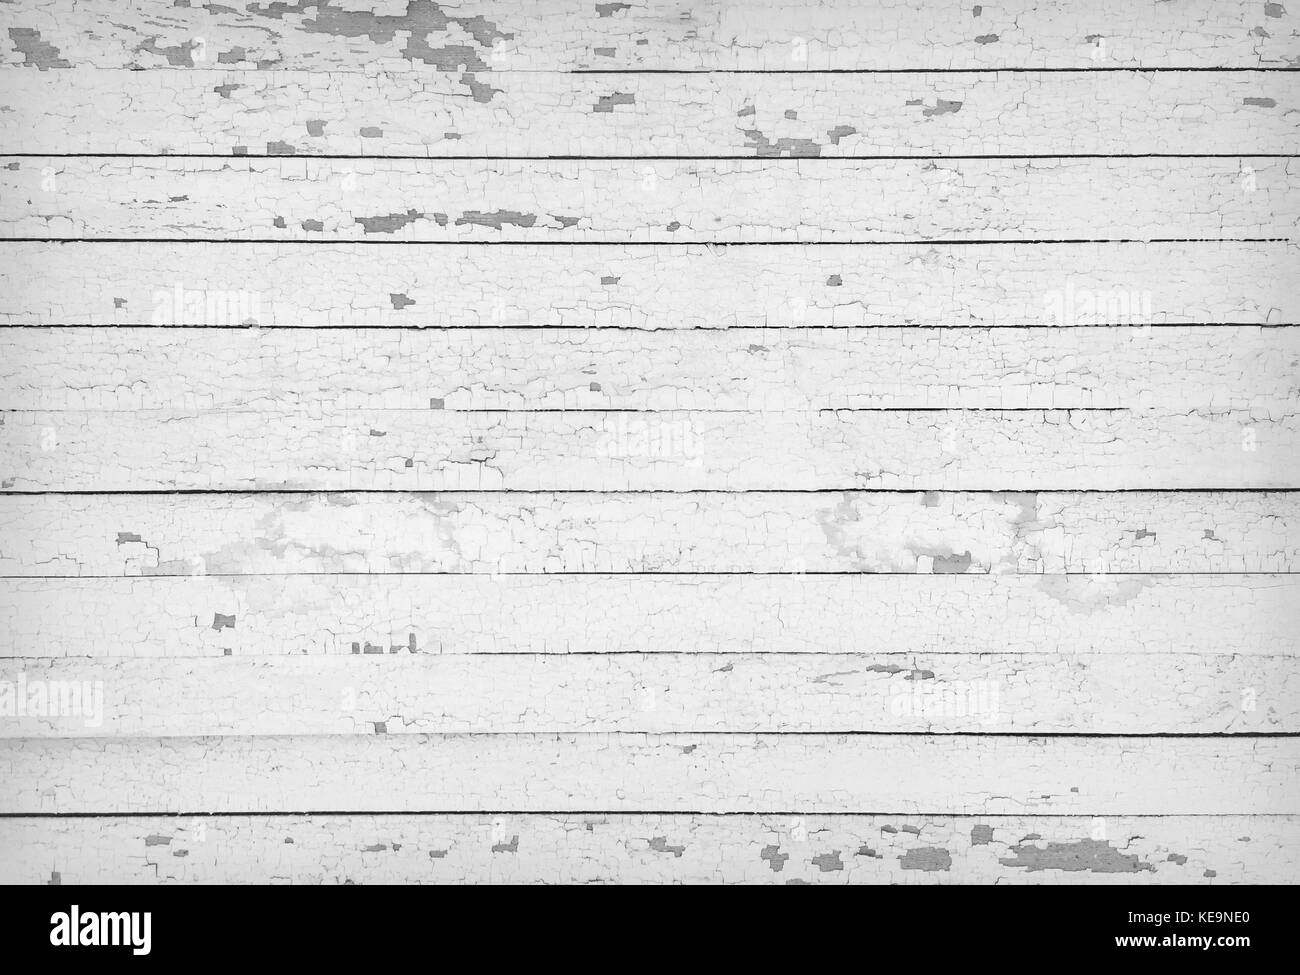 Black and white texture of wooden planks - Stock Image